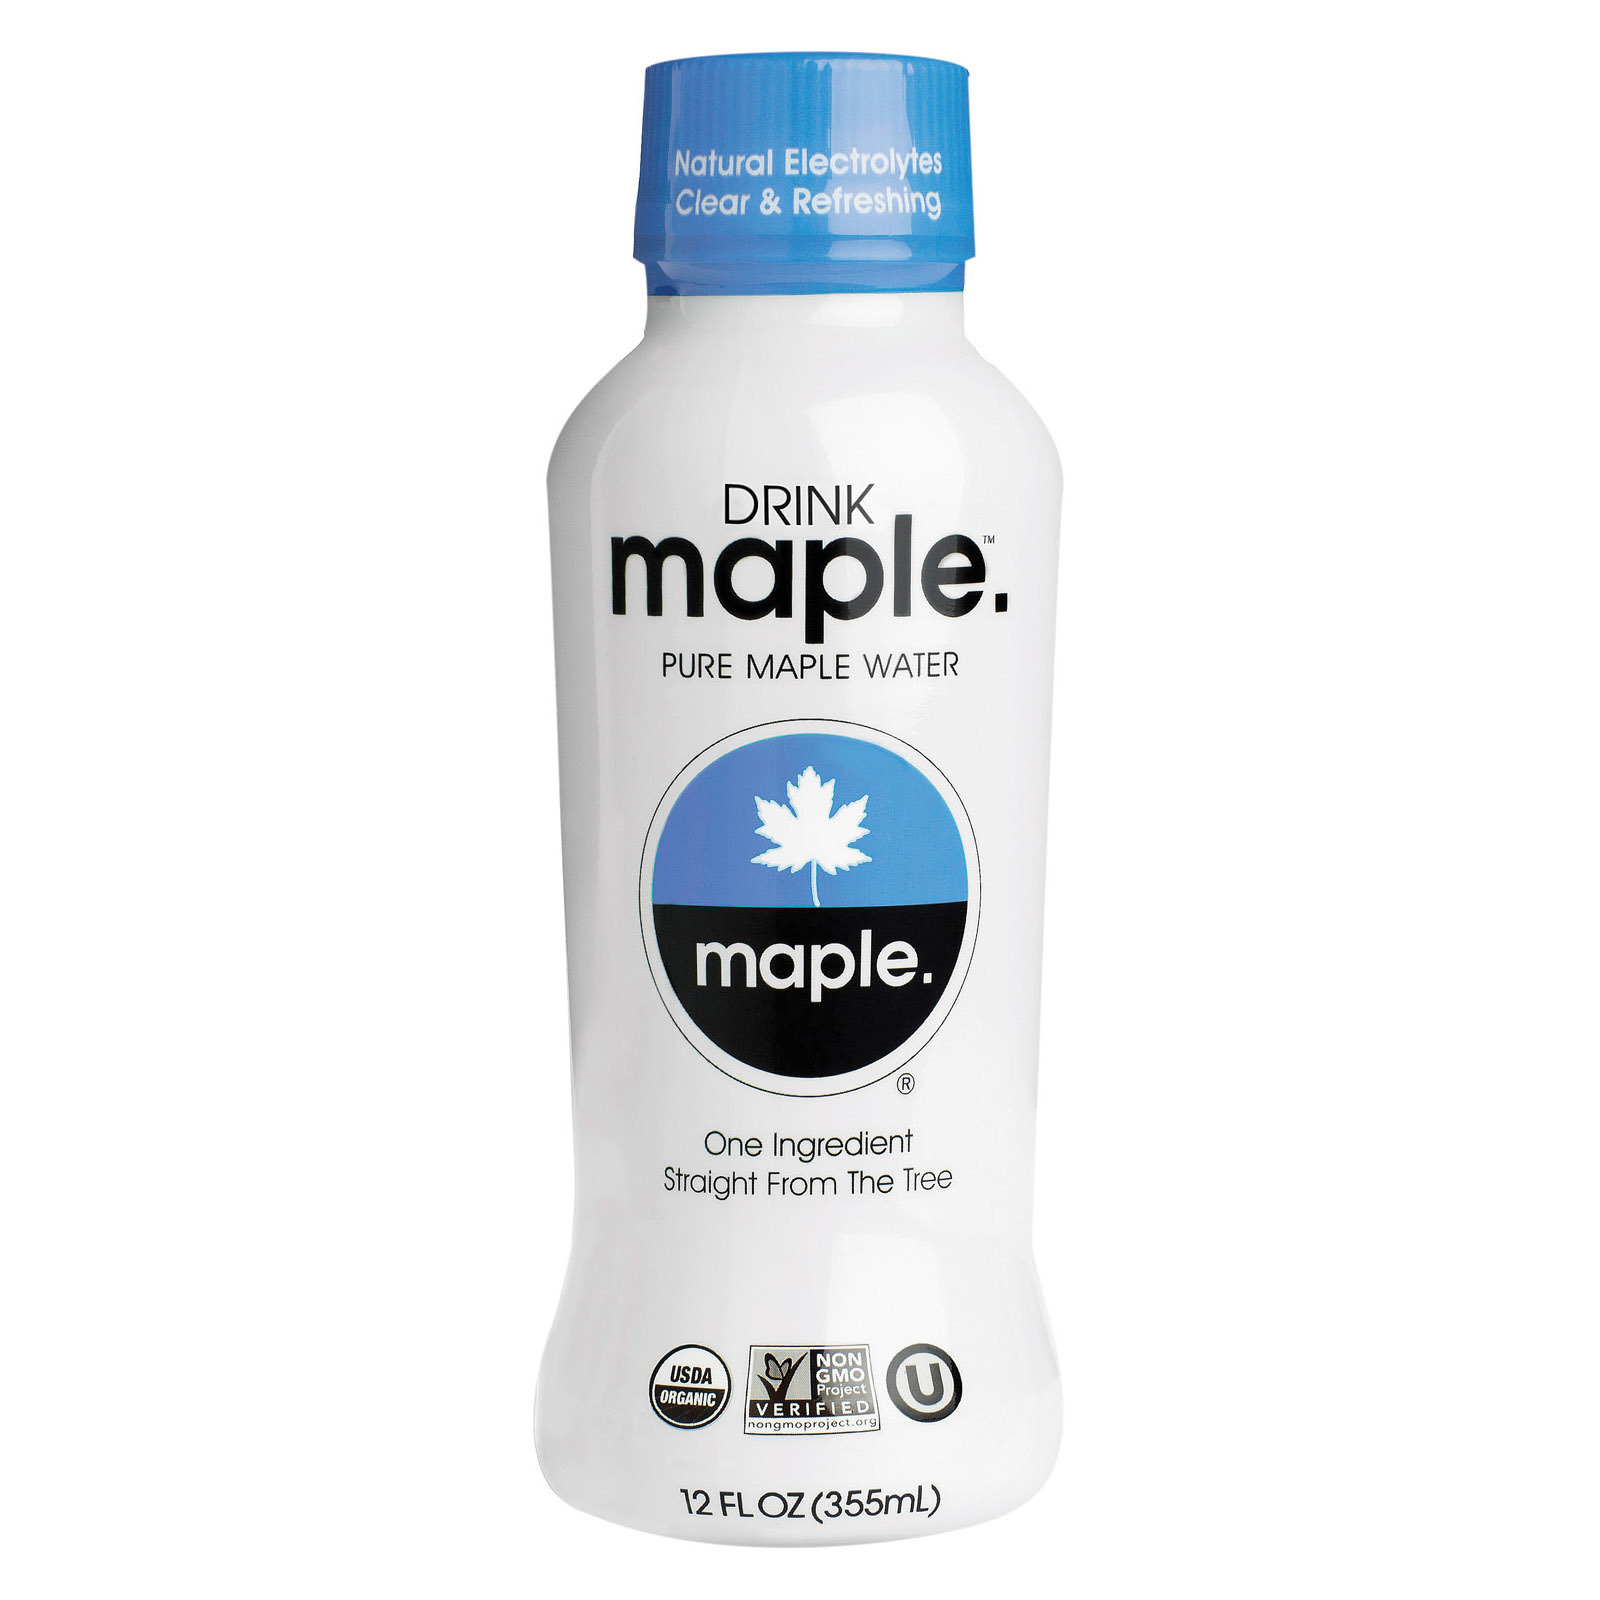 Drink Maple Organic Maple Water - Case of 12 - 12 FL oz.